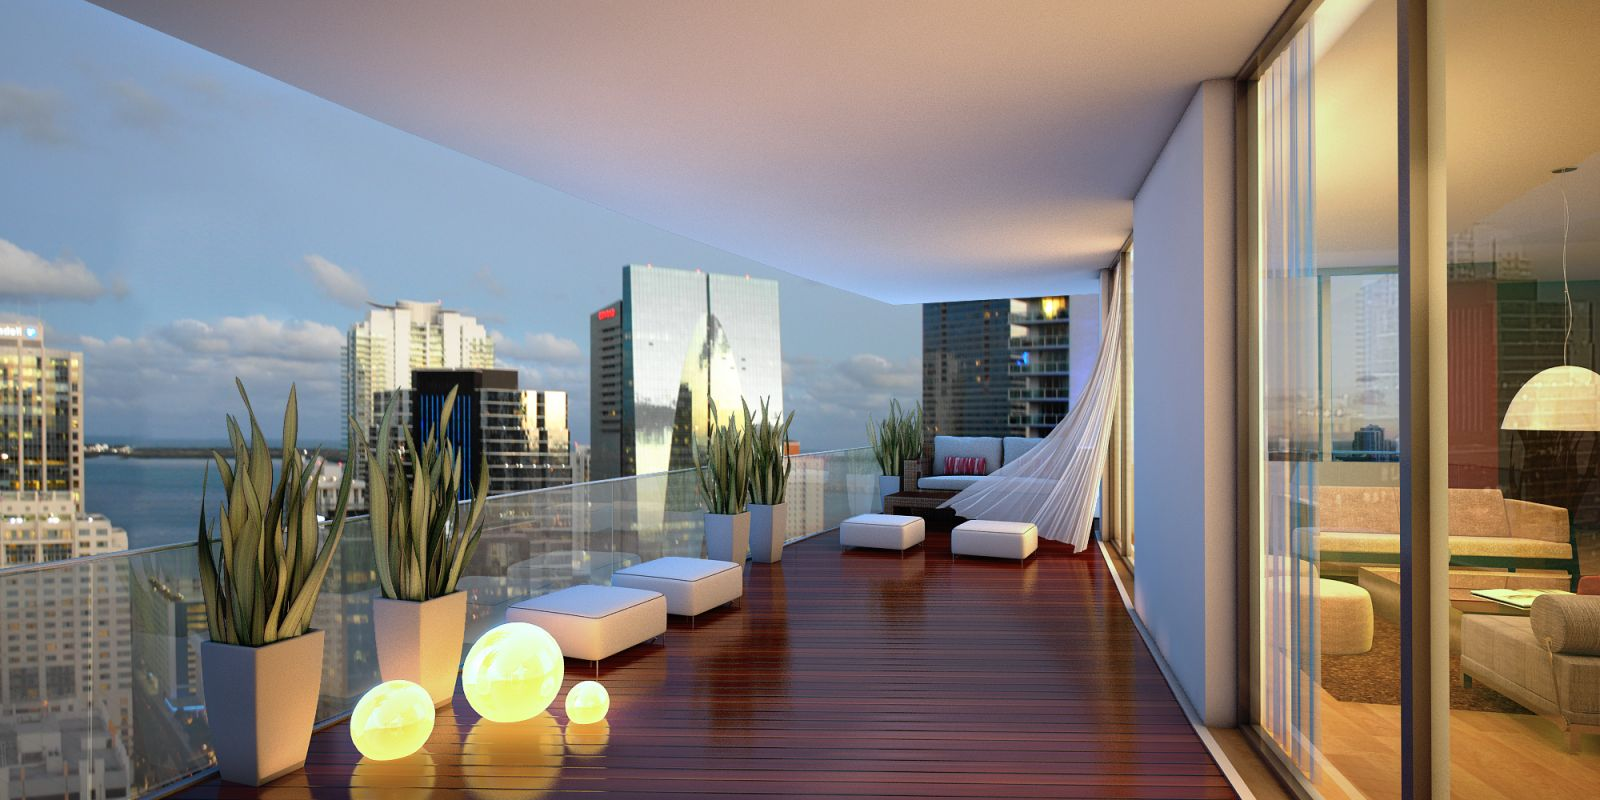 1100 Millecento New Luxury Apartments In Miami